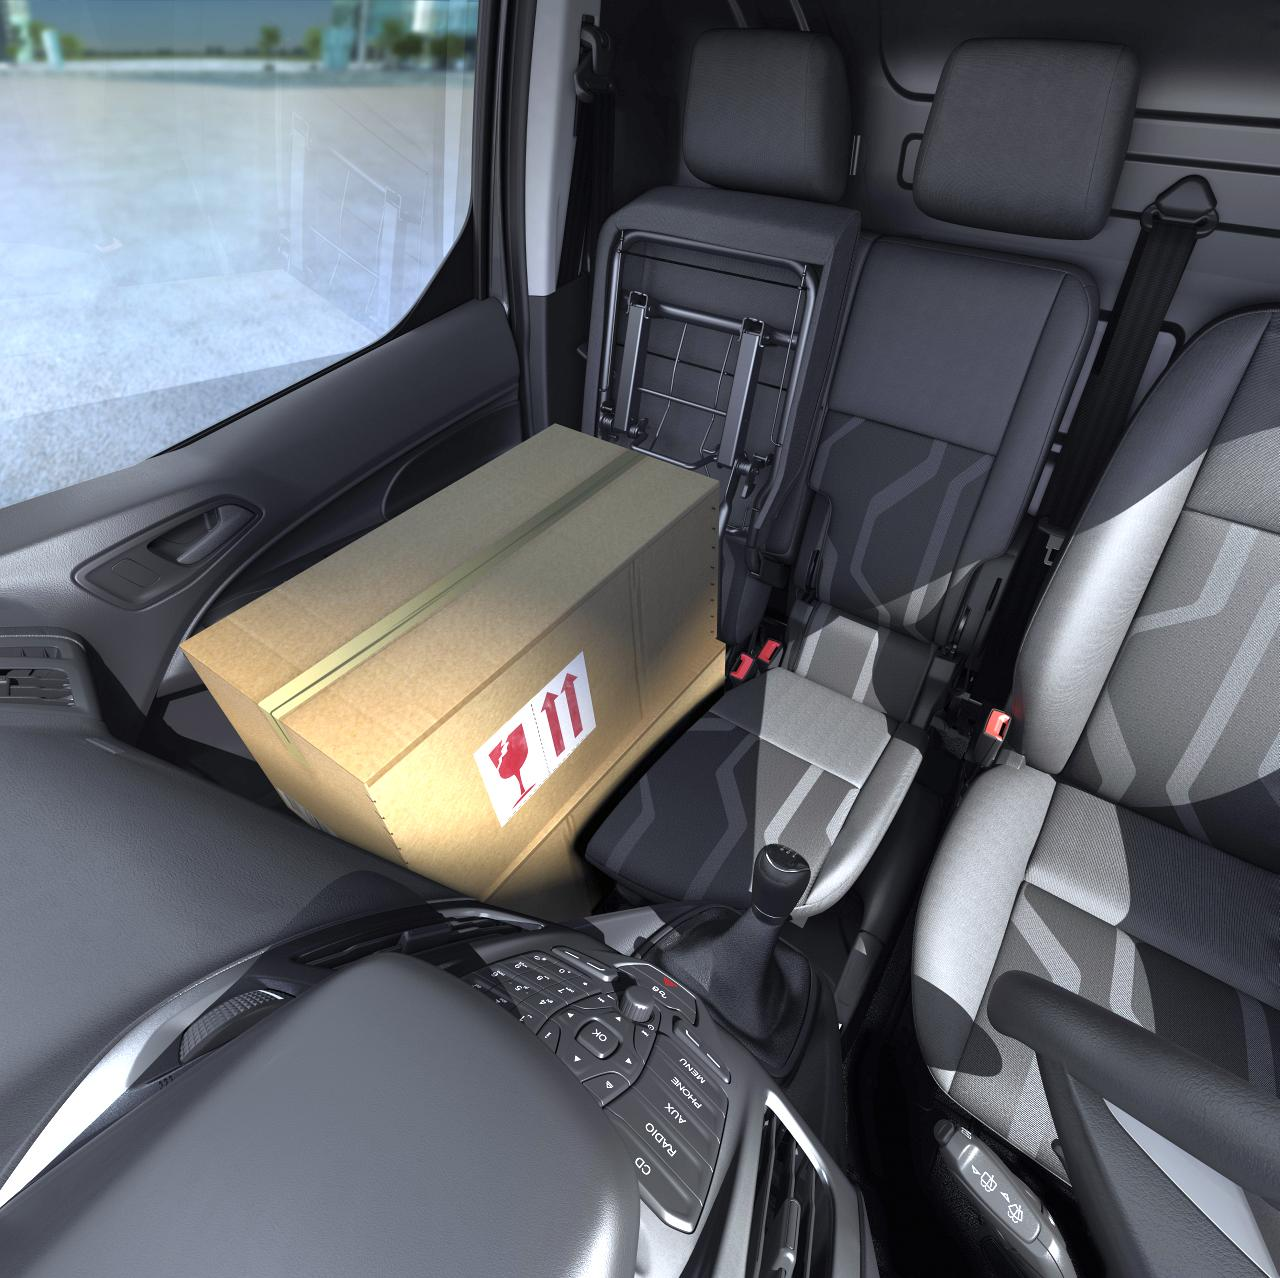 52 Ford Transit Connect 1 8td Swb: International Van Of The Year 2014